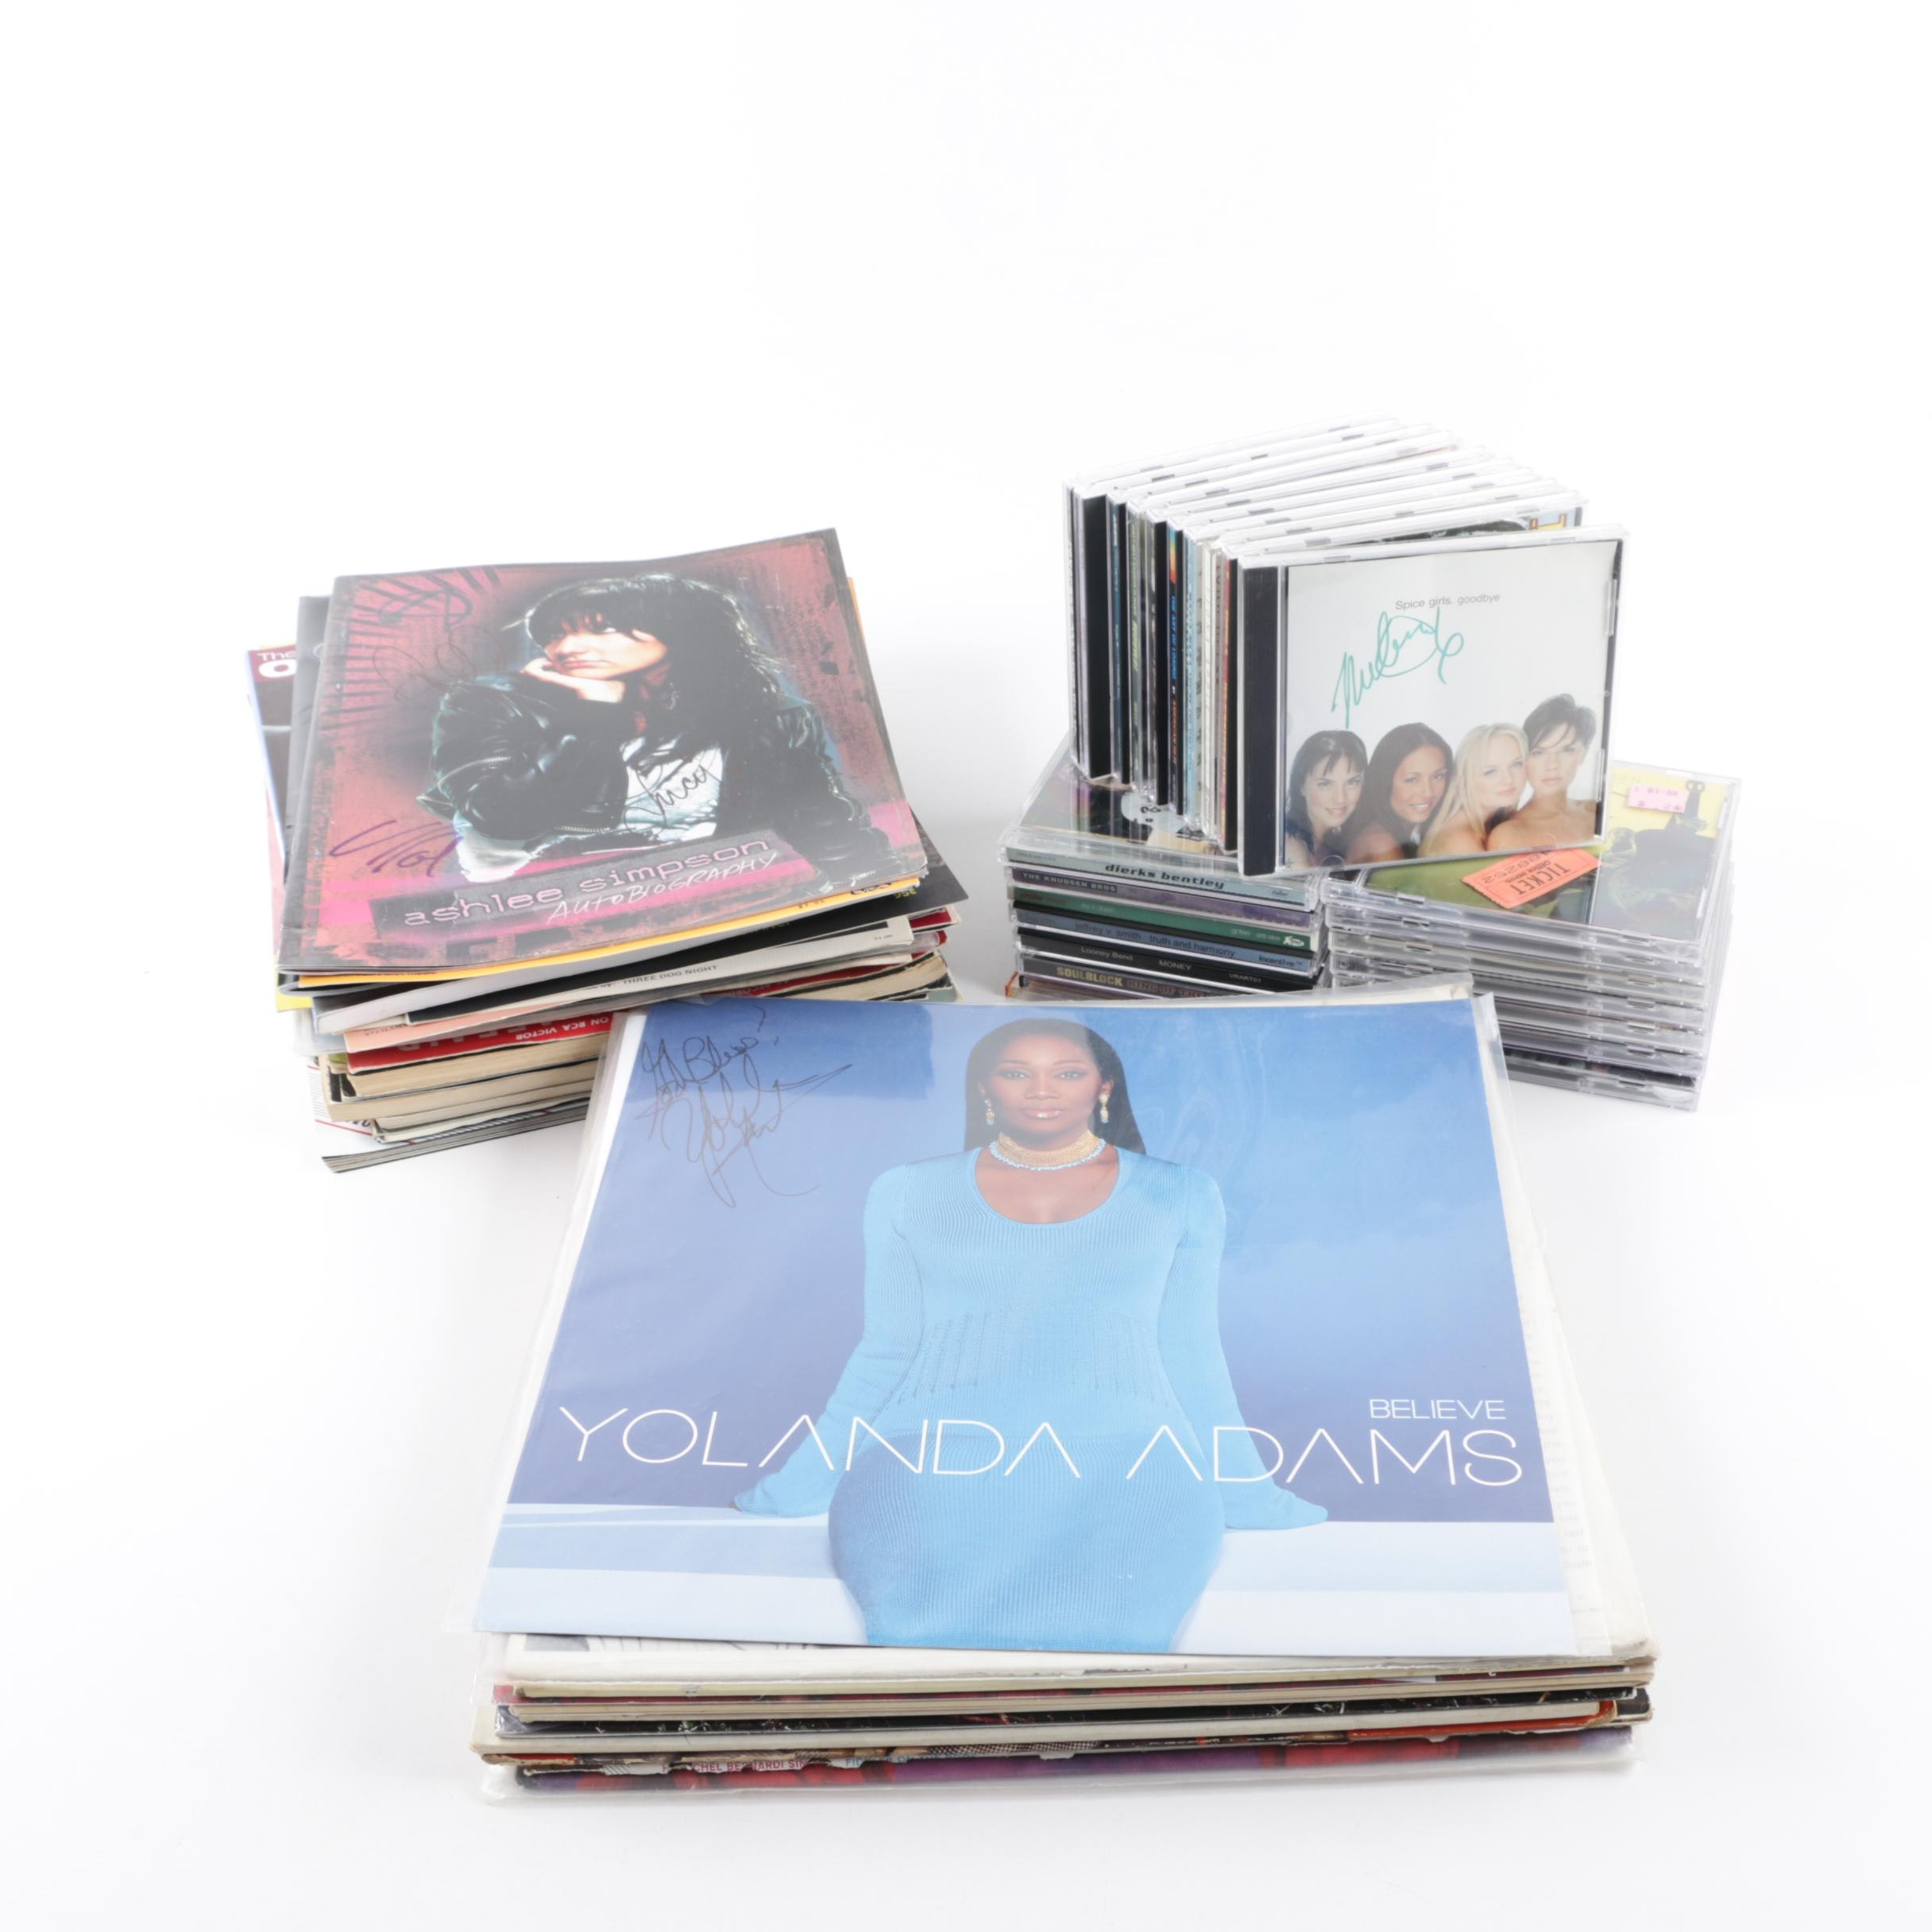 Autographed Sheet Music, CDs, Records and Memorabilia